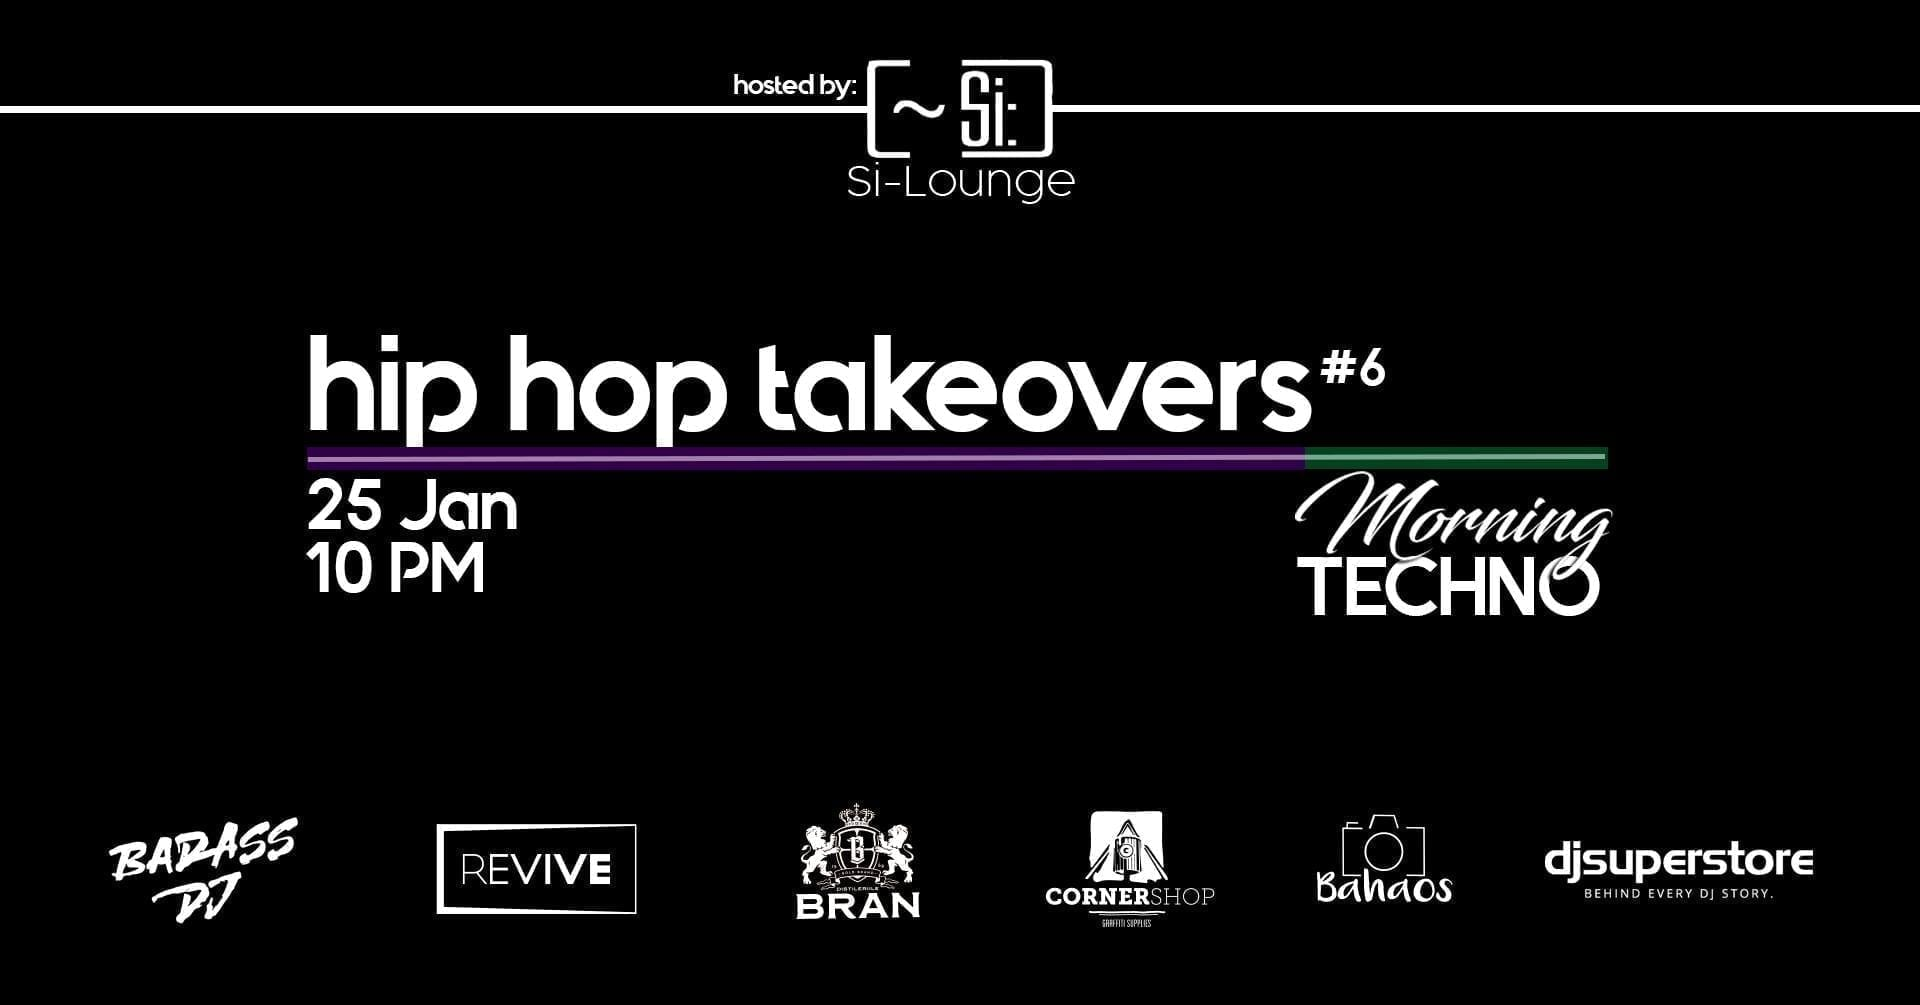 Hip-Hop Takeovers #6 at [~Si:]-Lounge